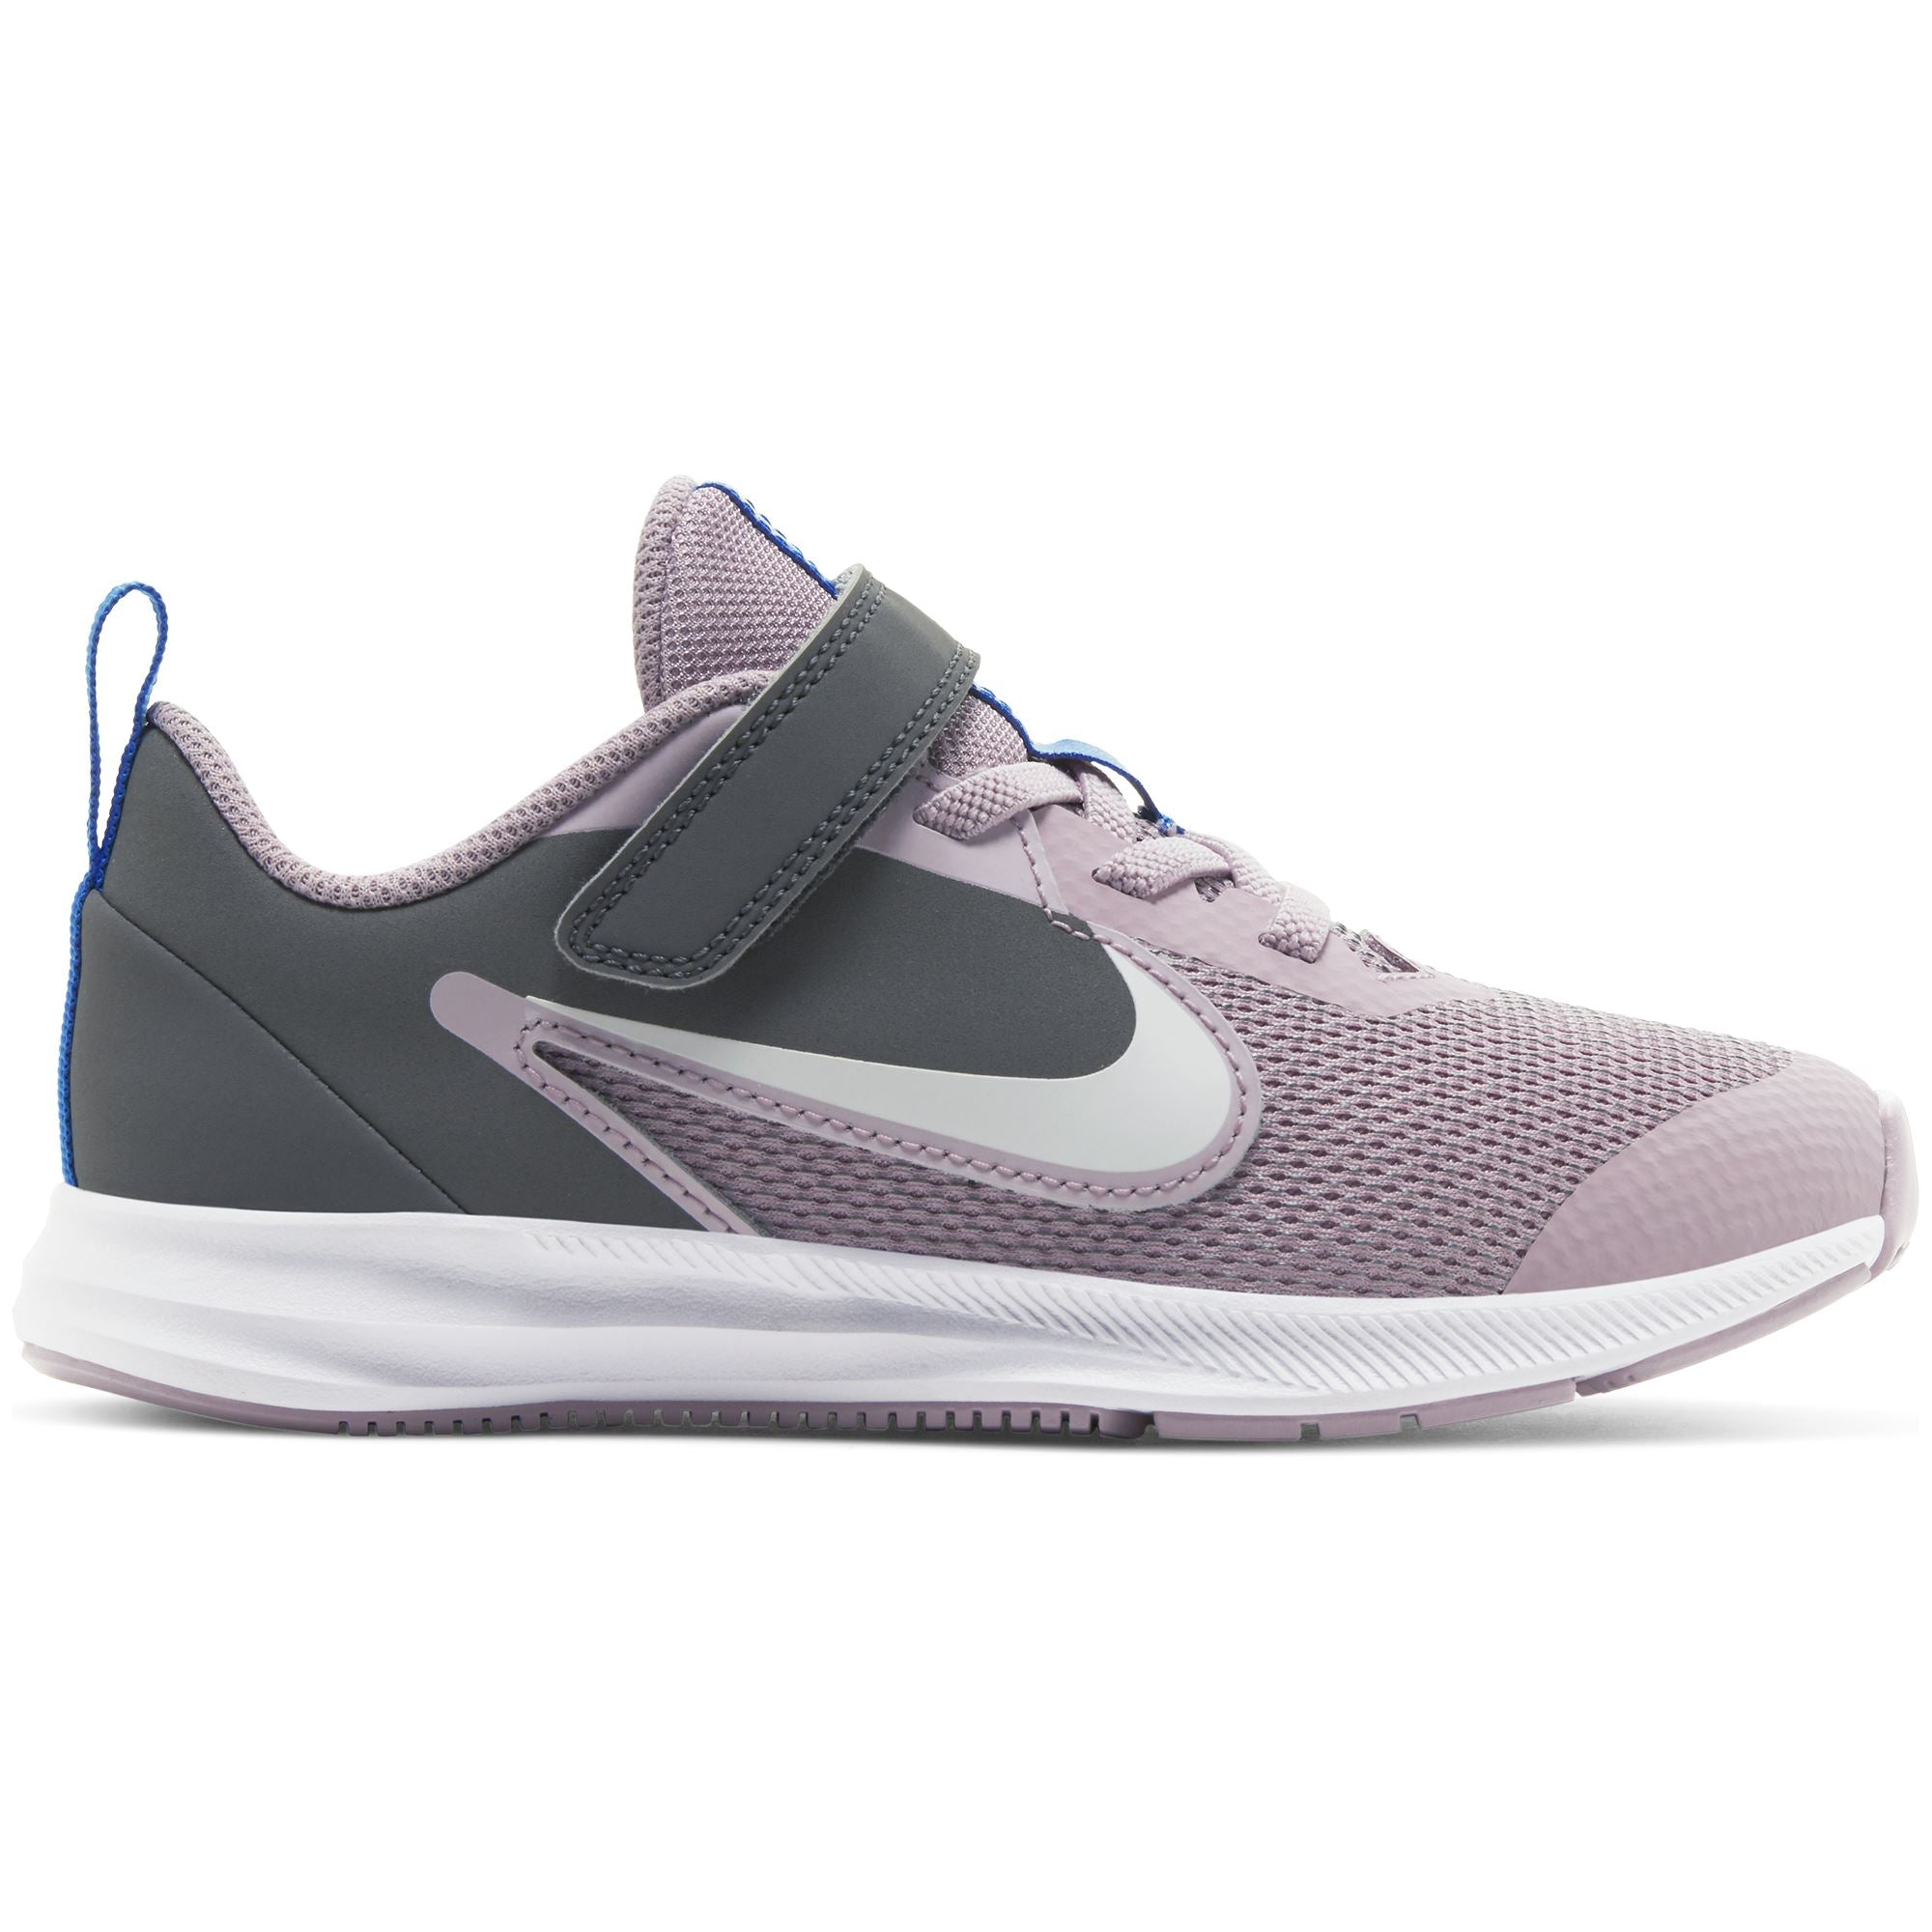 Nike Kids Downshifter 9 Little Kids Shoe - Iced Lilac/White-Smoke Grey-Soar SP-Footwear-Kids Nike